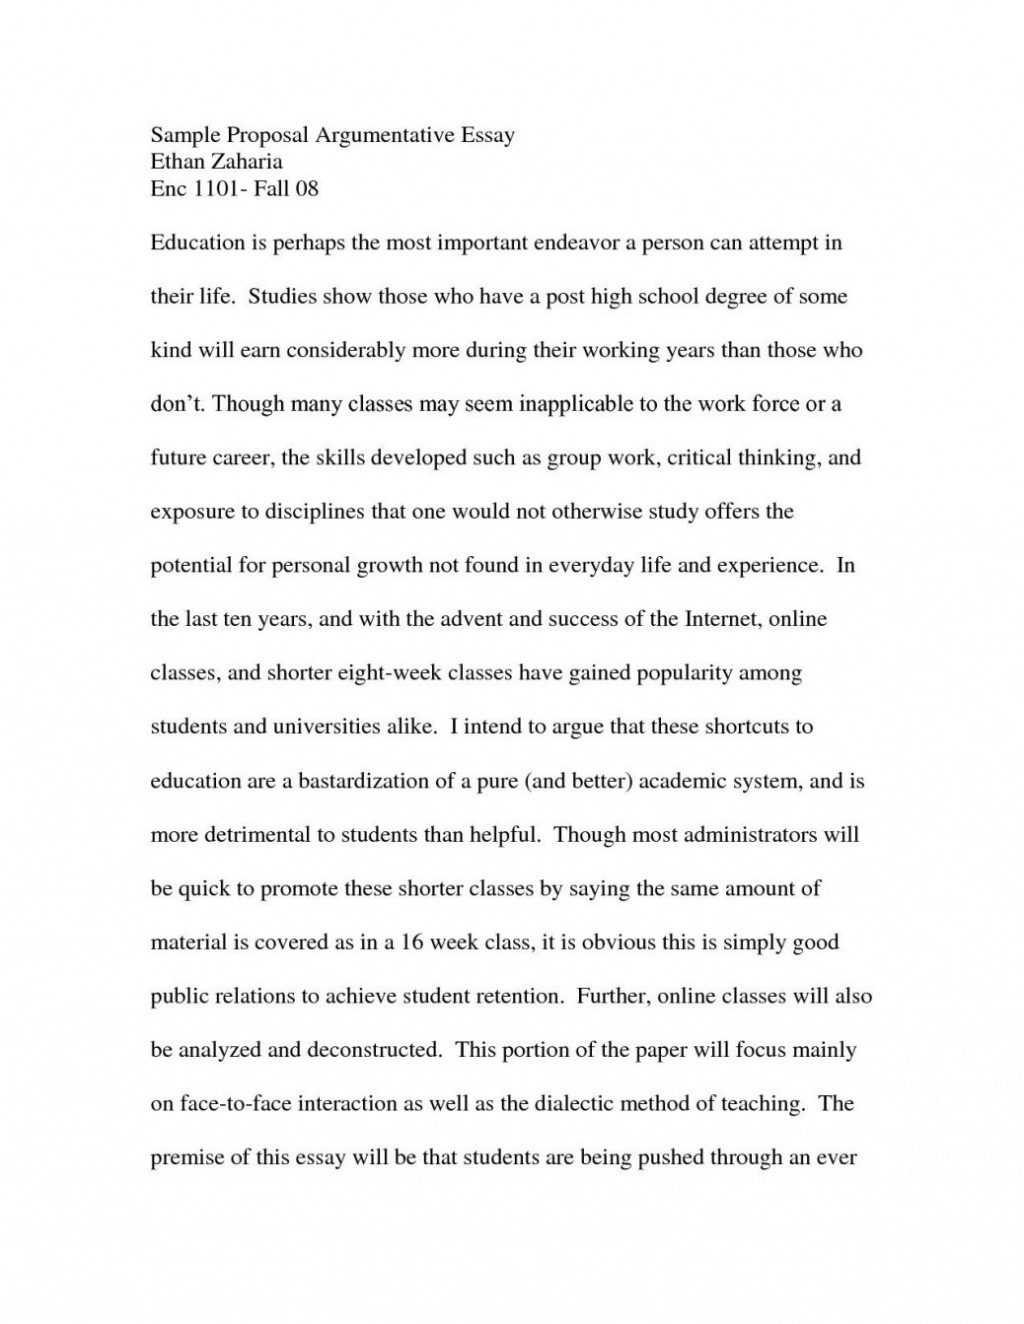 014 Example Ofmentative Research Paper Good Essay Tremendous Image Ideas Template Awesome Collection High School Sample 1038x1343 Fearsome For Papers Topic Large